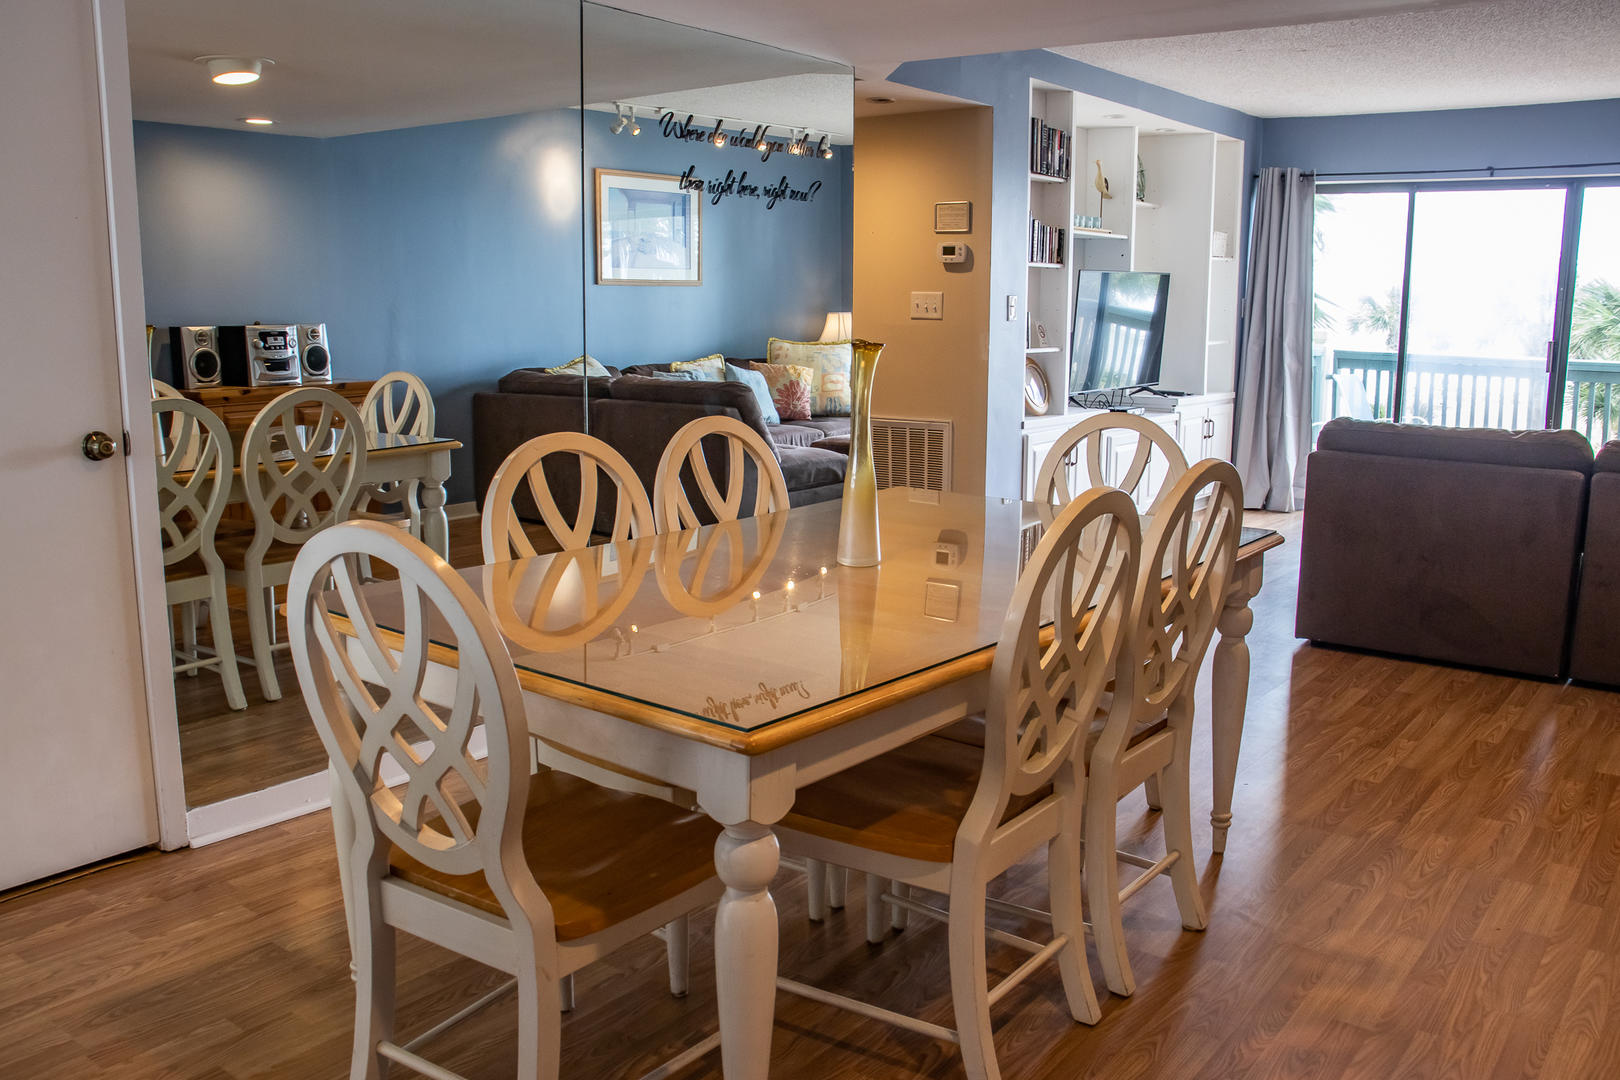 6 seat dining table, between kitchen and living